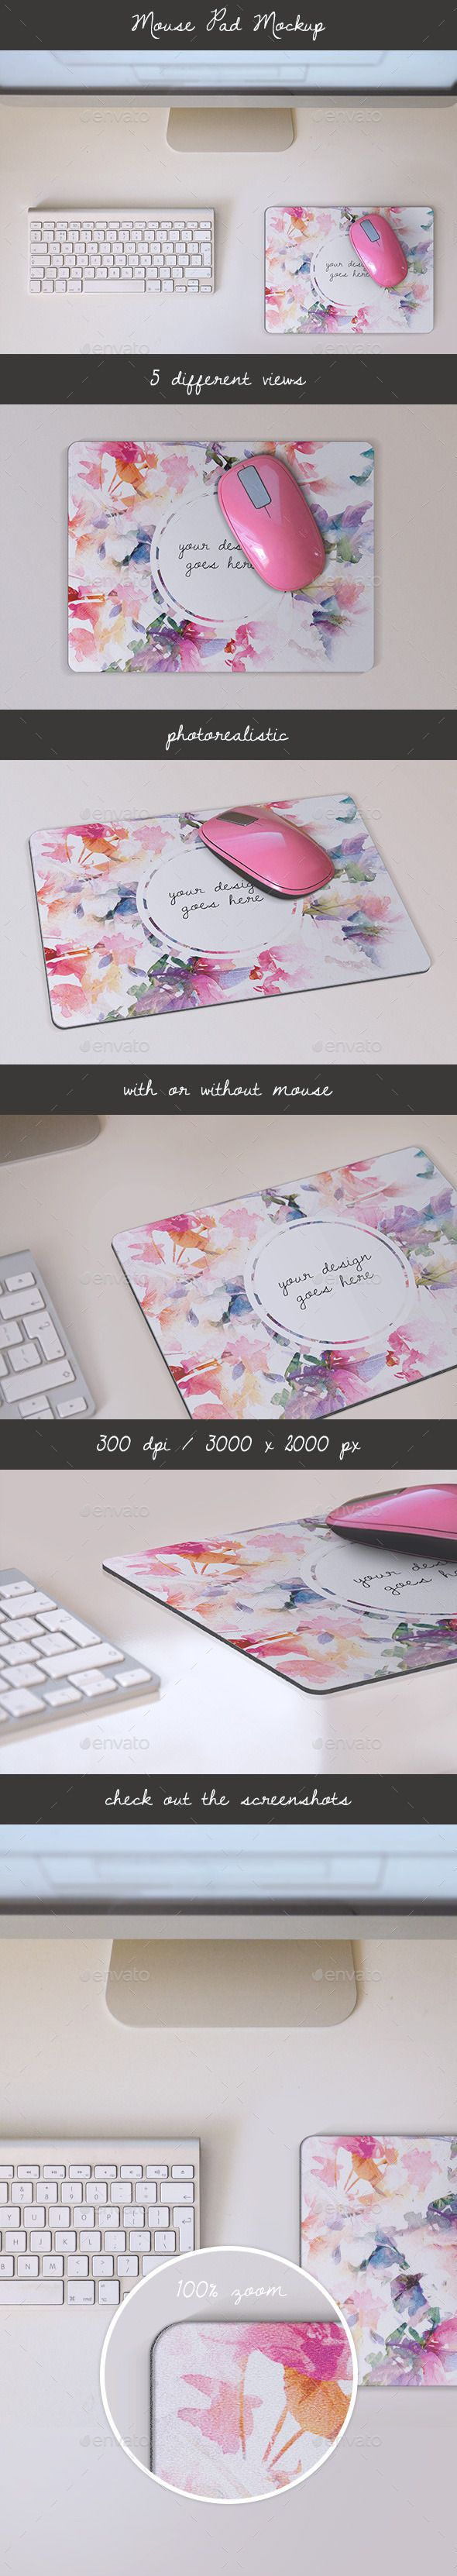 Photorealistic Mouse Pad Mockup | Buy and Download: http://graphicriver.net/item/photorealistic-mouse-pad-mockup/10014462?ref=ksioks